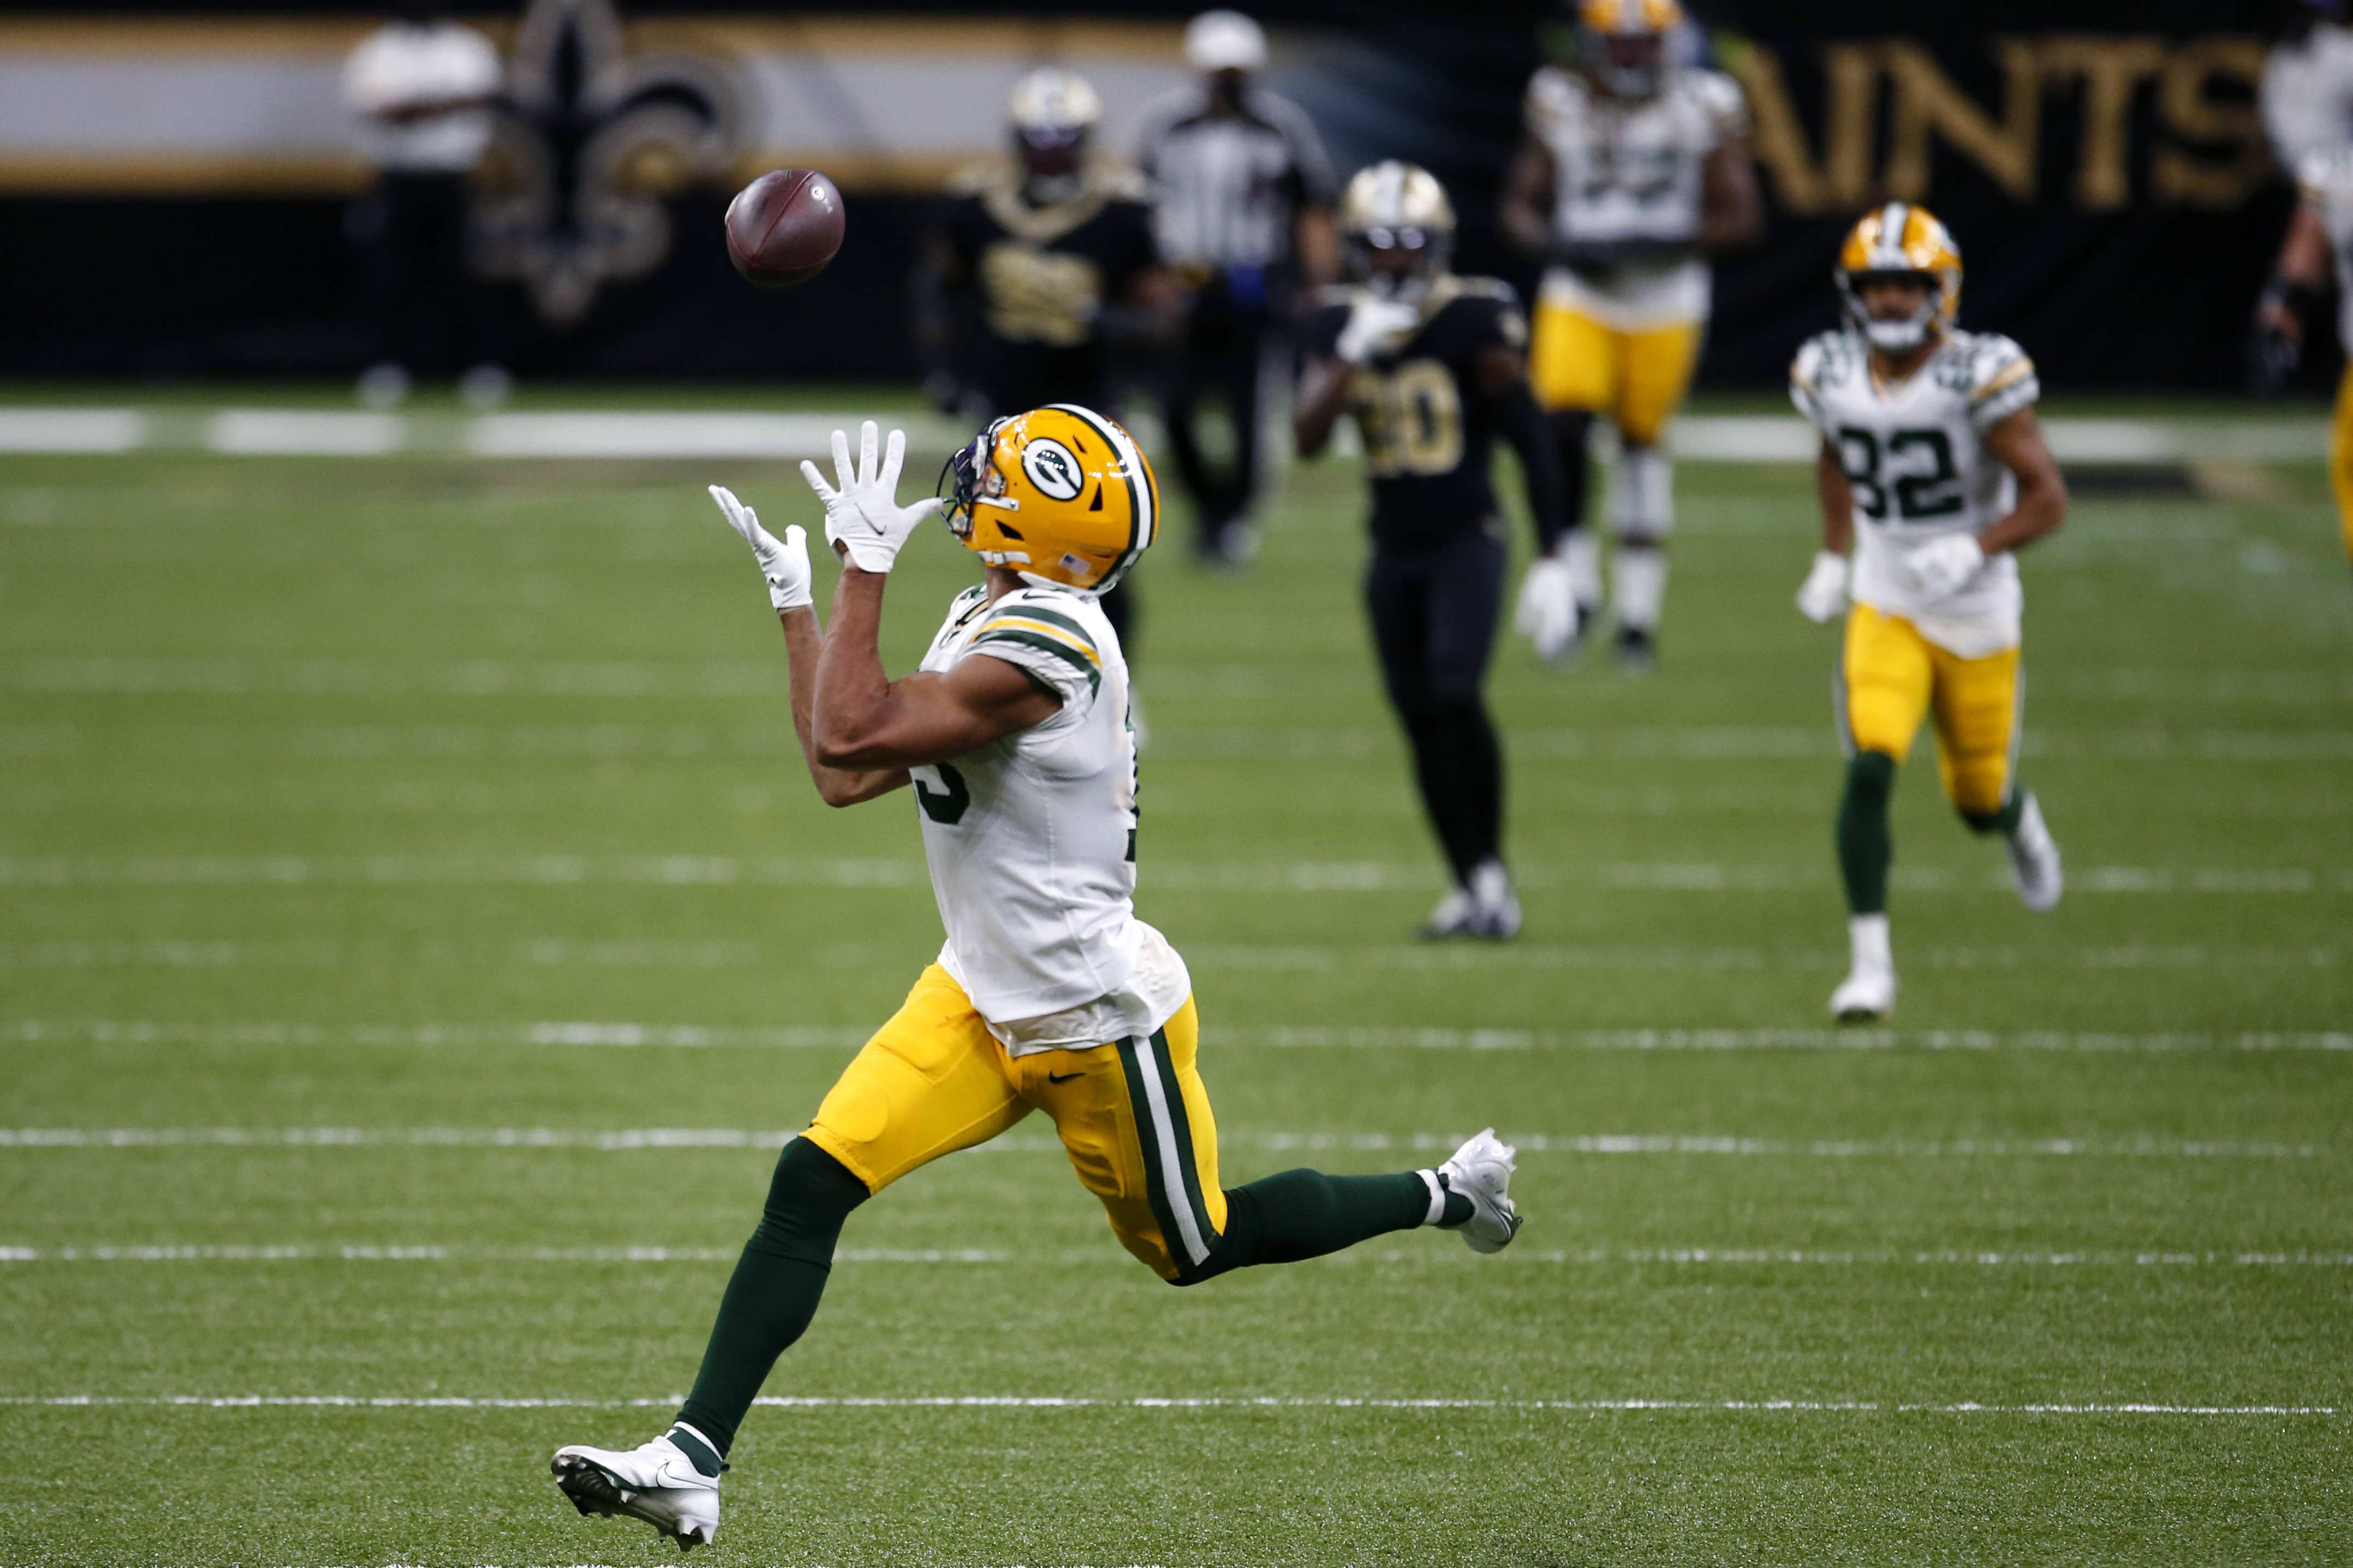 Aaron Rodgers Leads The Green Bay Packers Past The New Orleans Saints Recap Score Stats And More Oregonlive Com